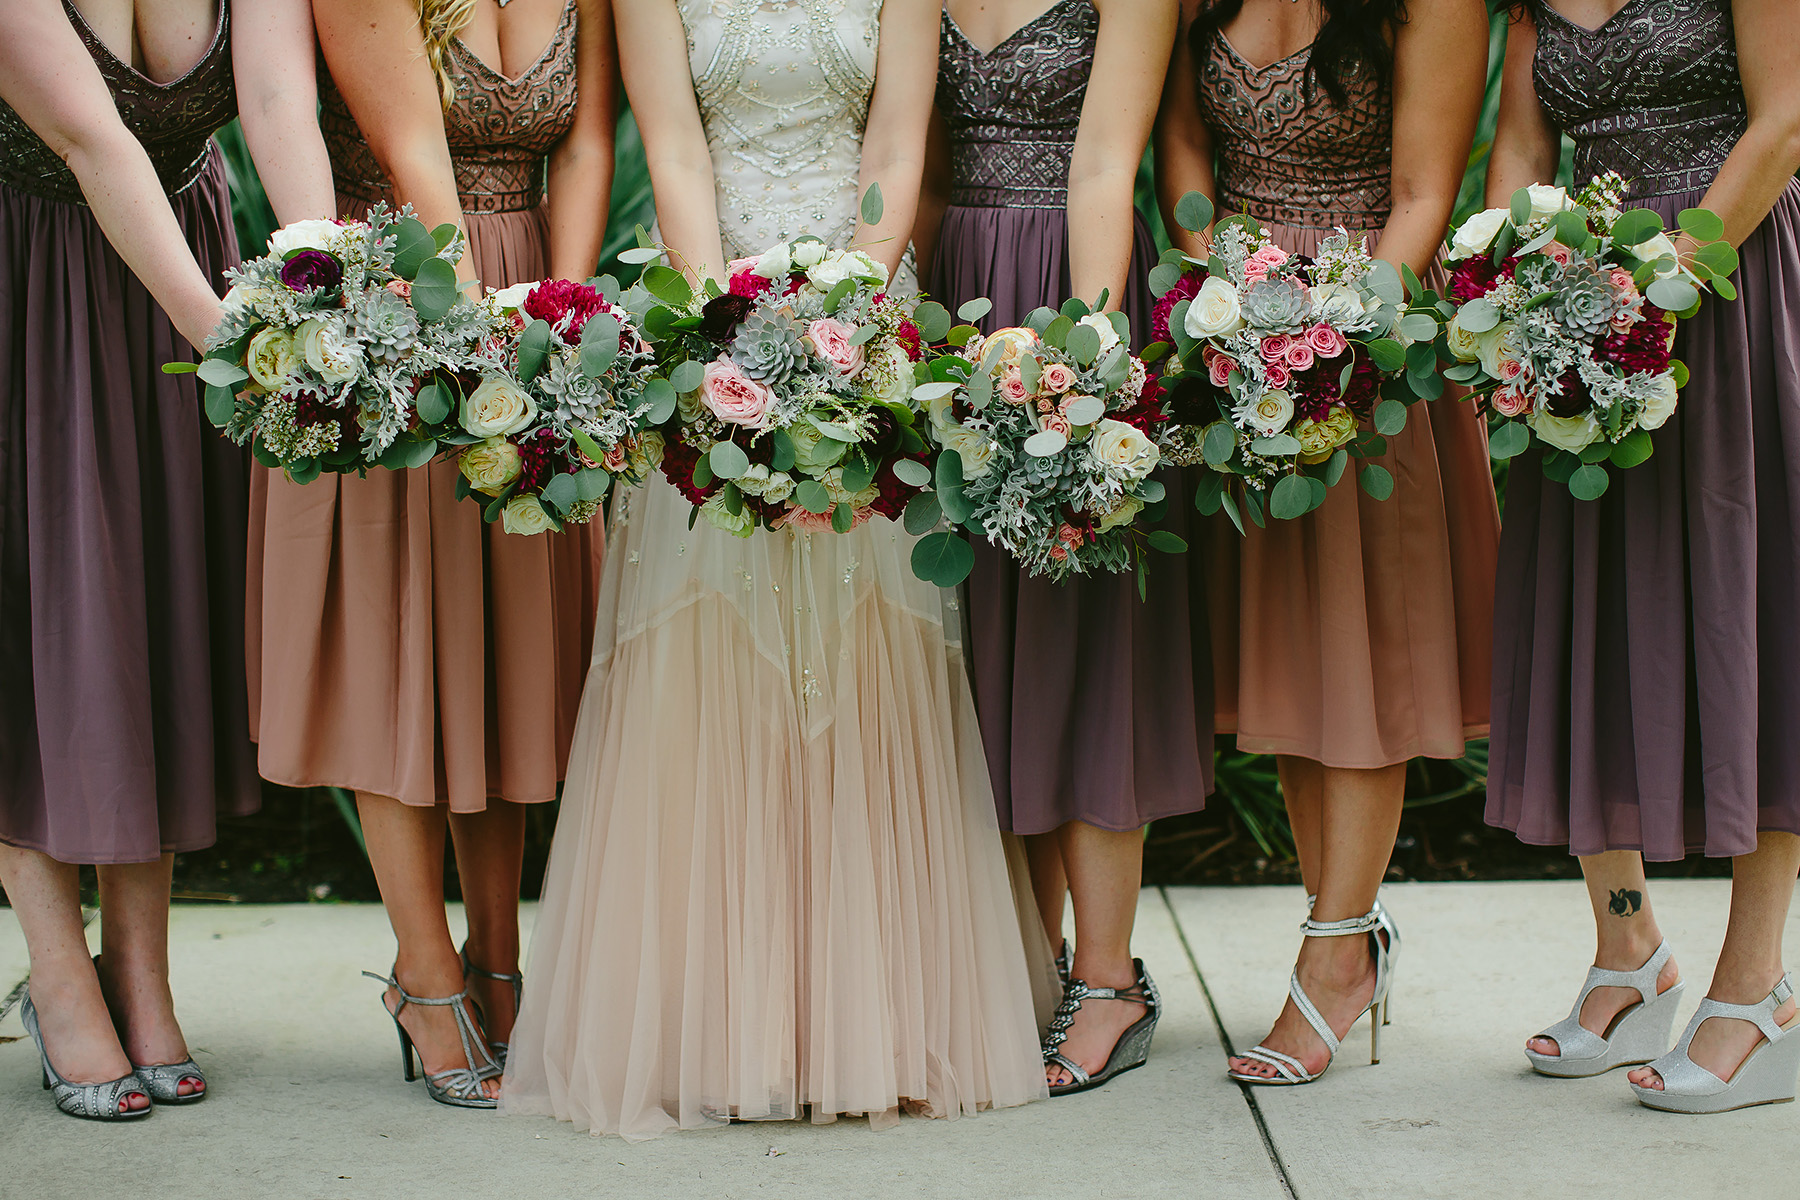 miami-wedding-photographer-bridesmaids-bouquets-flowers-beautiful-pink-dresses-photography.jpg